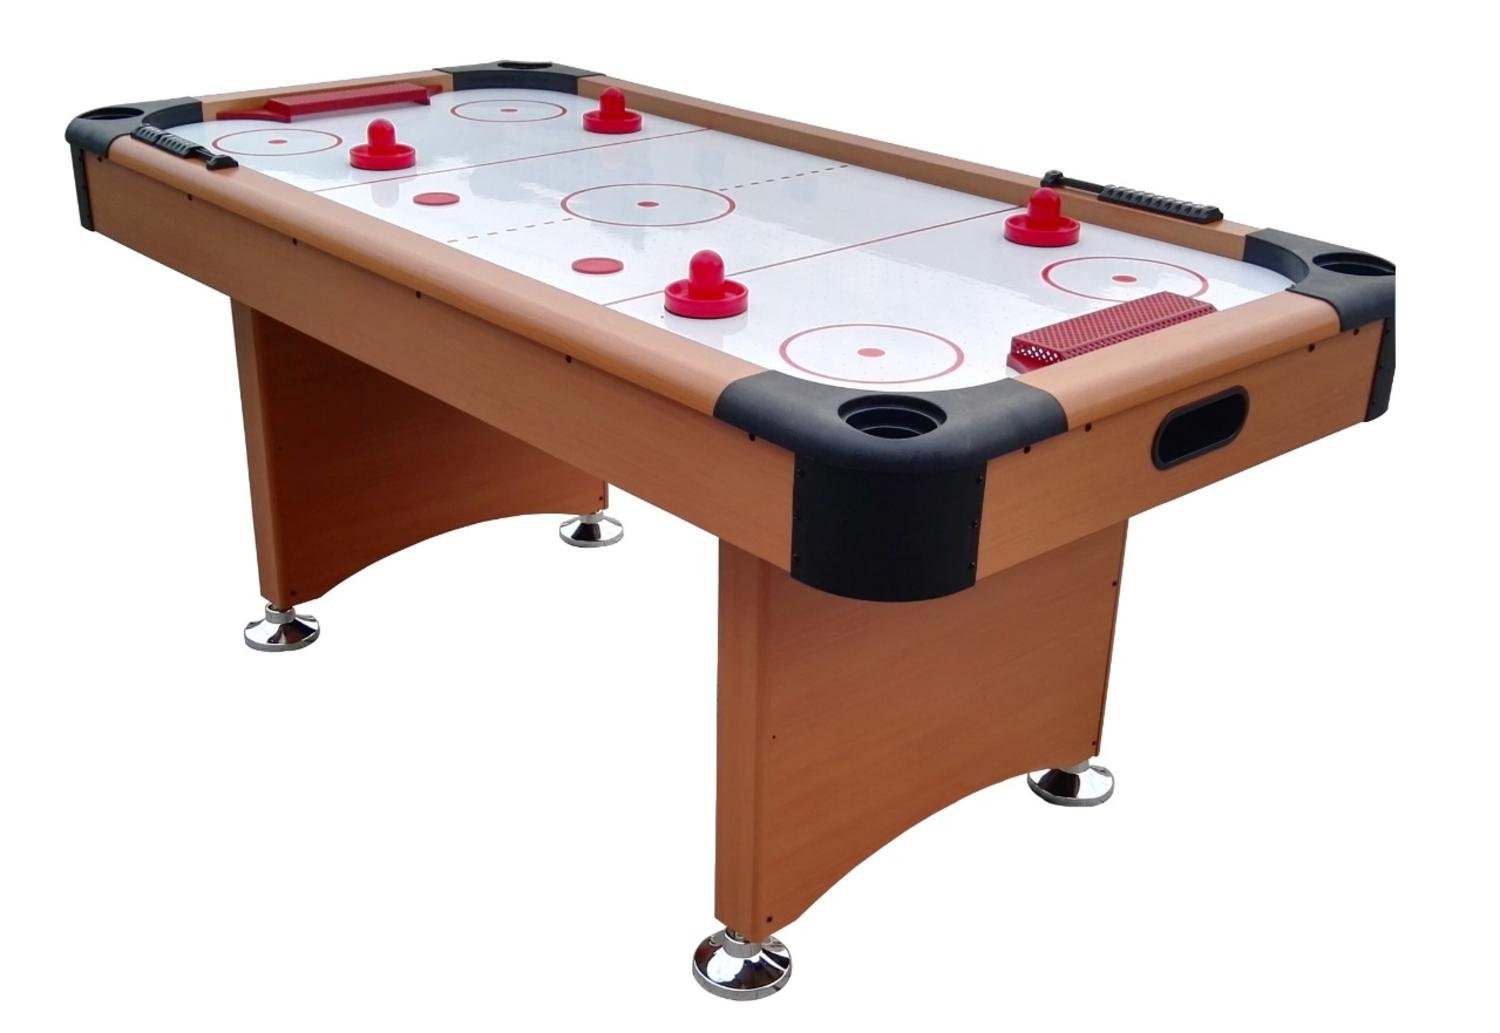 Pool Central A503-6FT Game Table, Brown/White/Red, 6' 3' by Pool Central